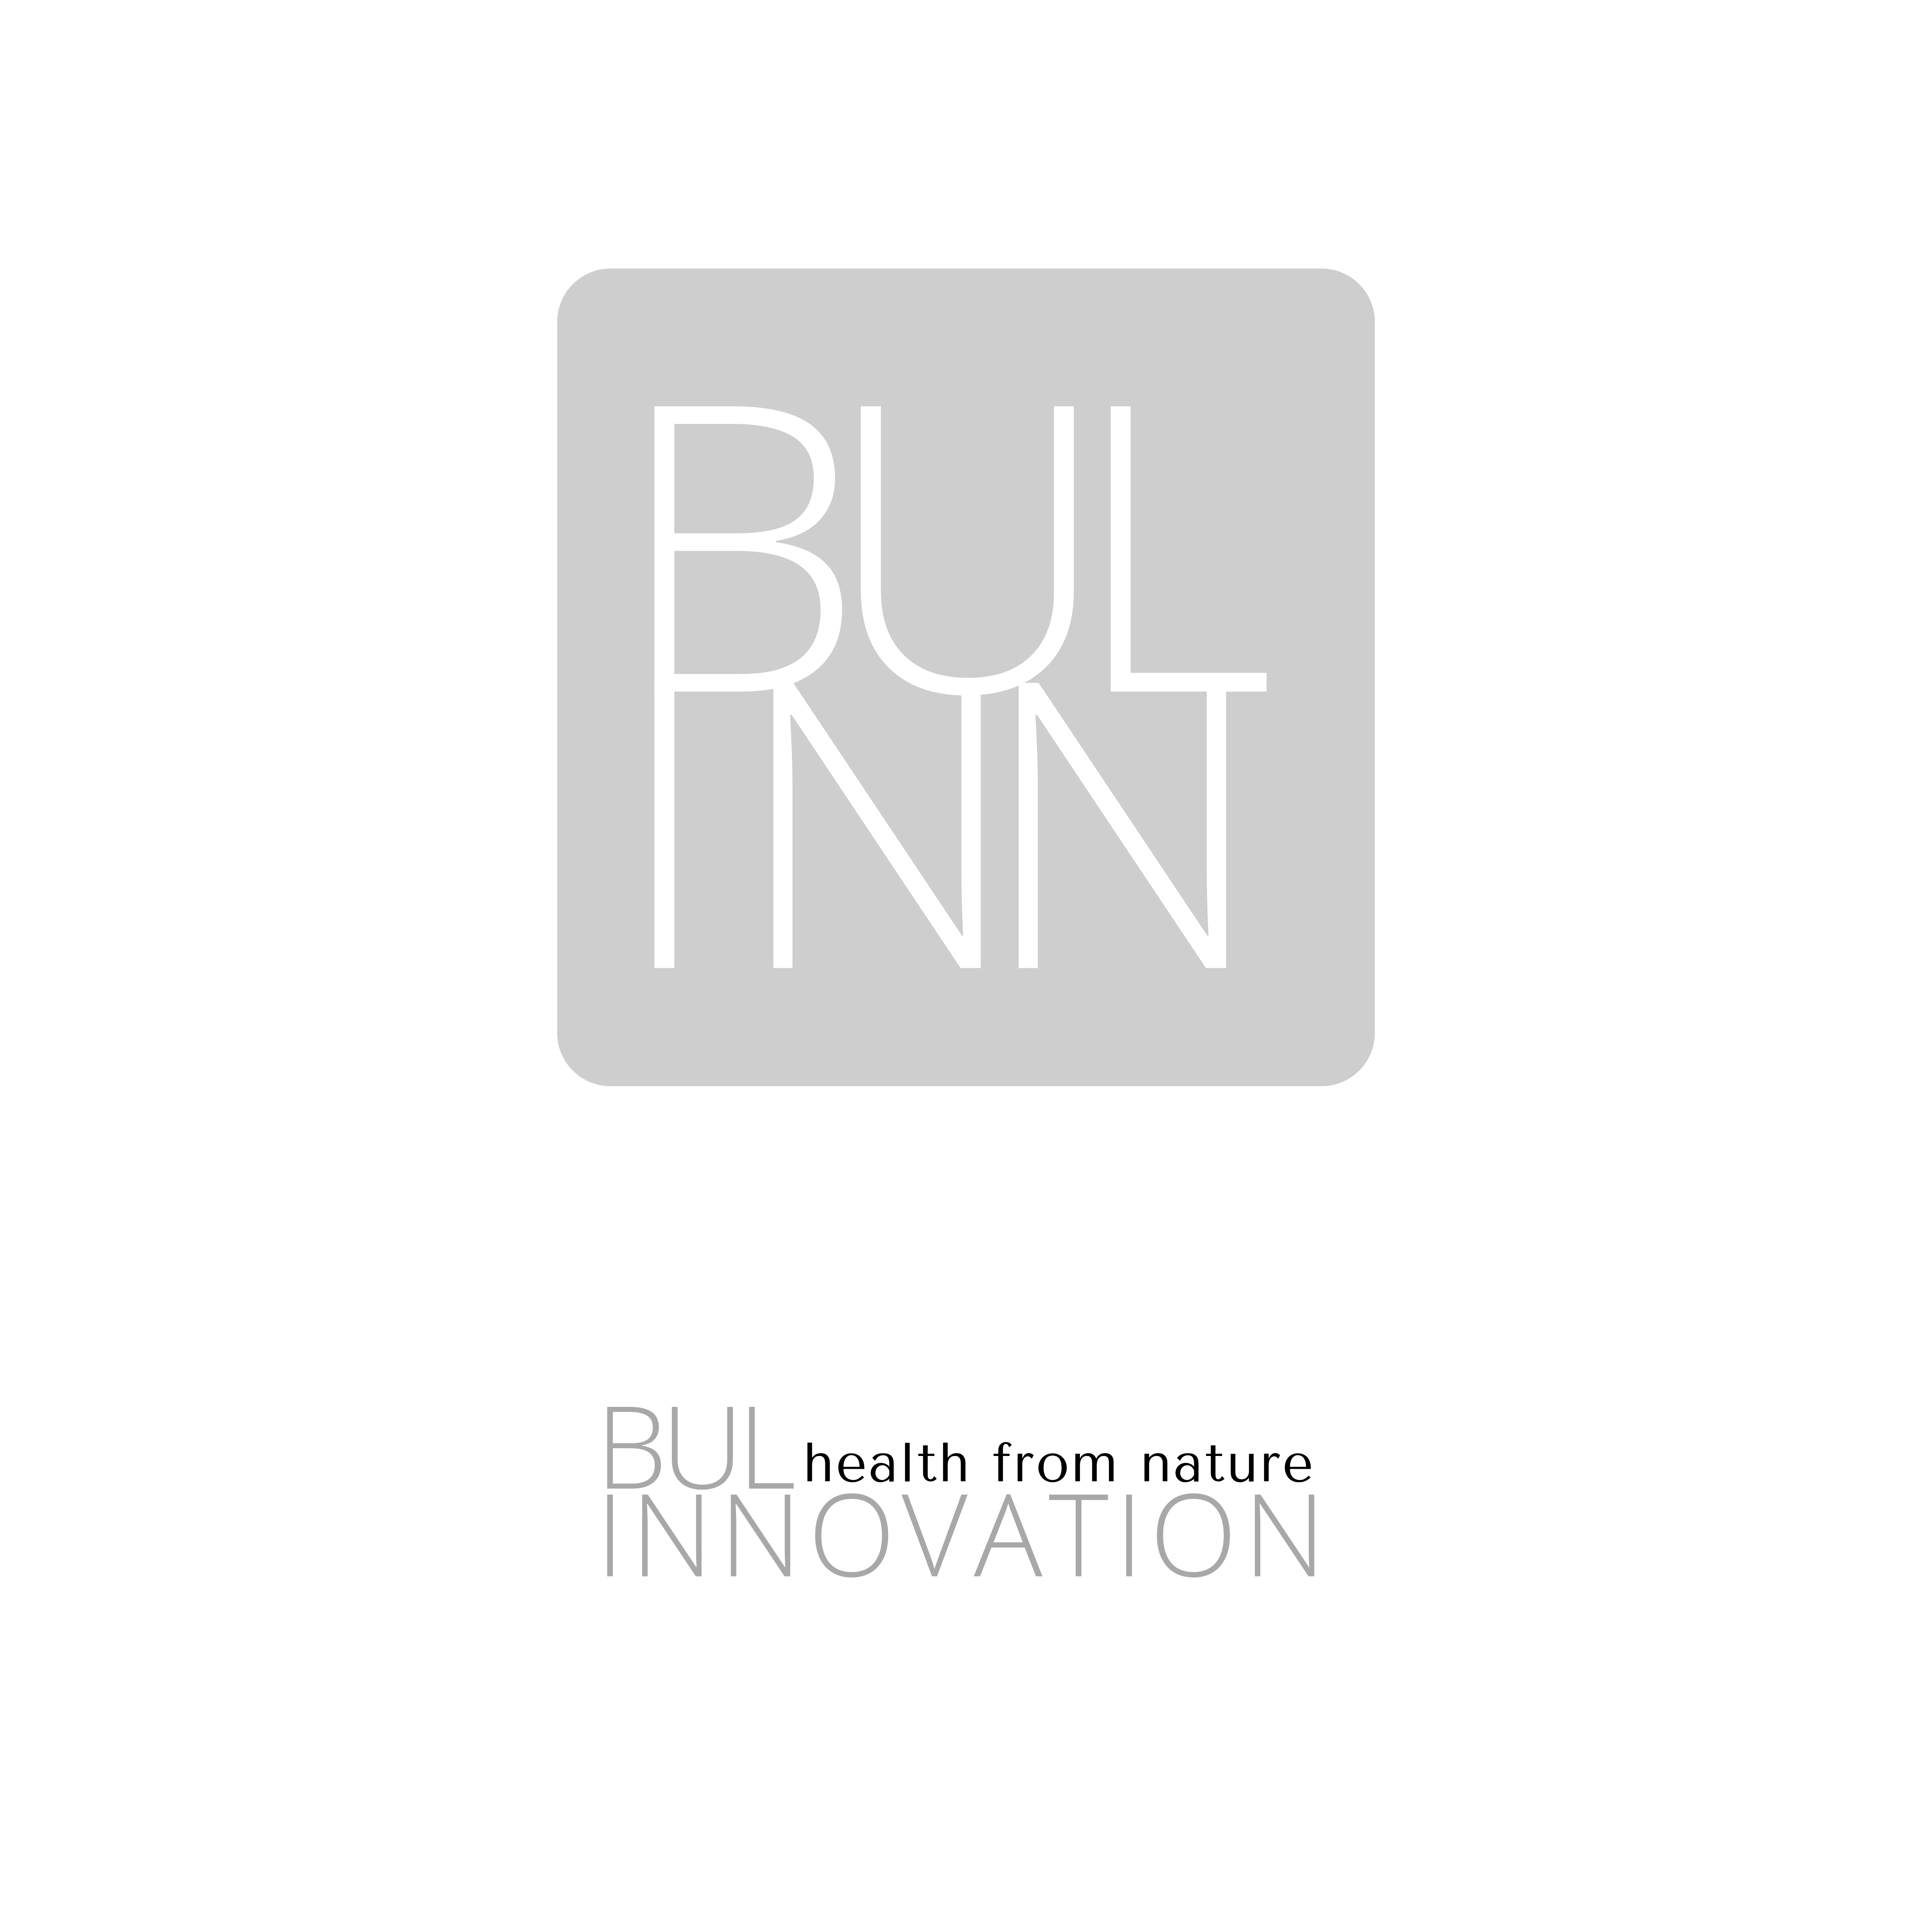 BUL INNOVATION health from nature